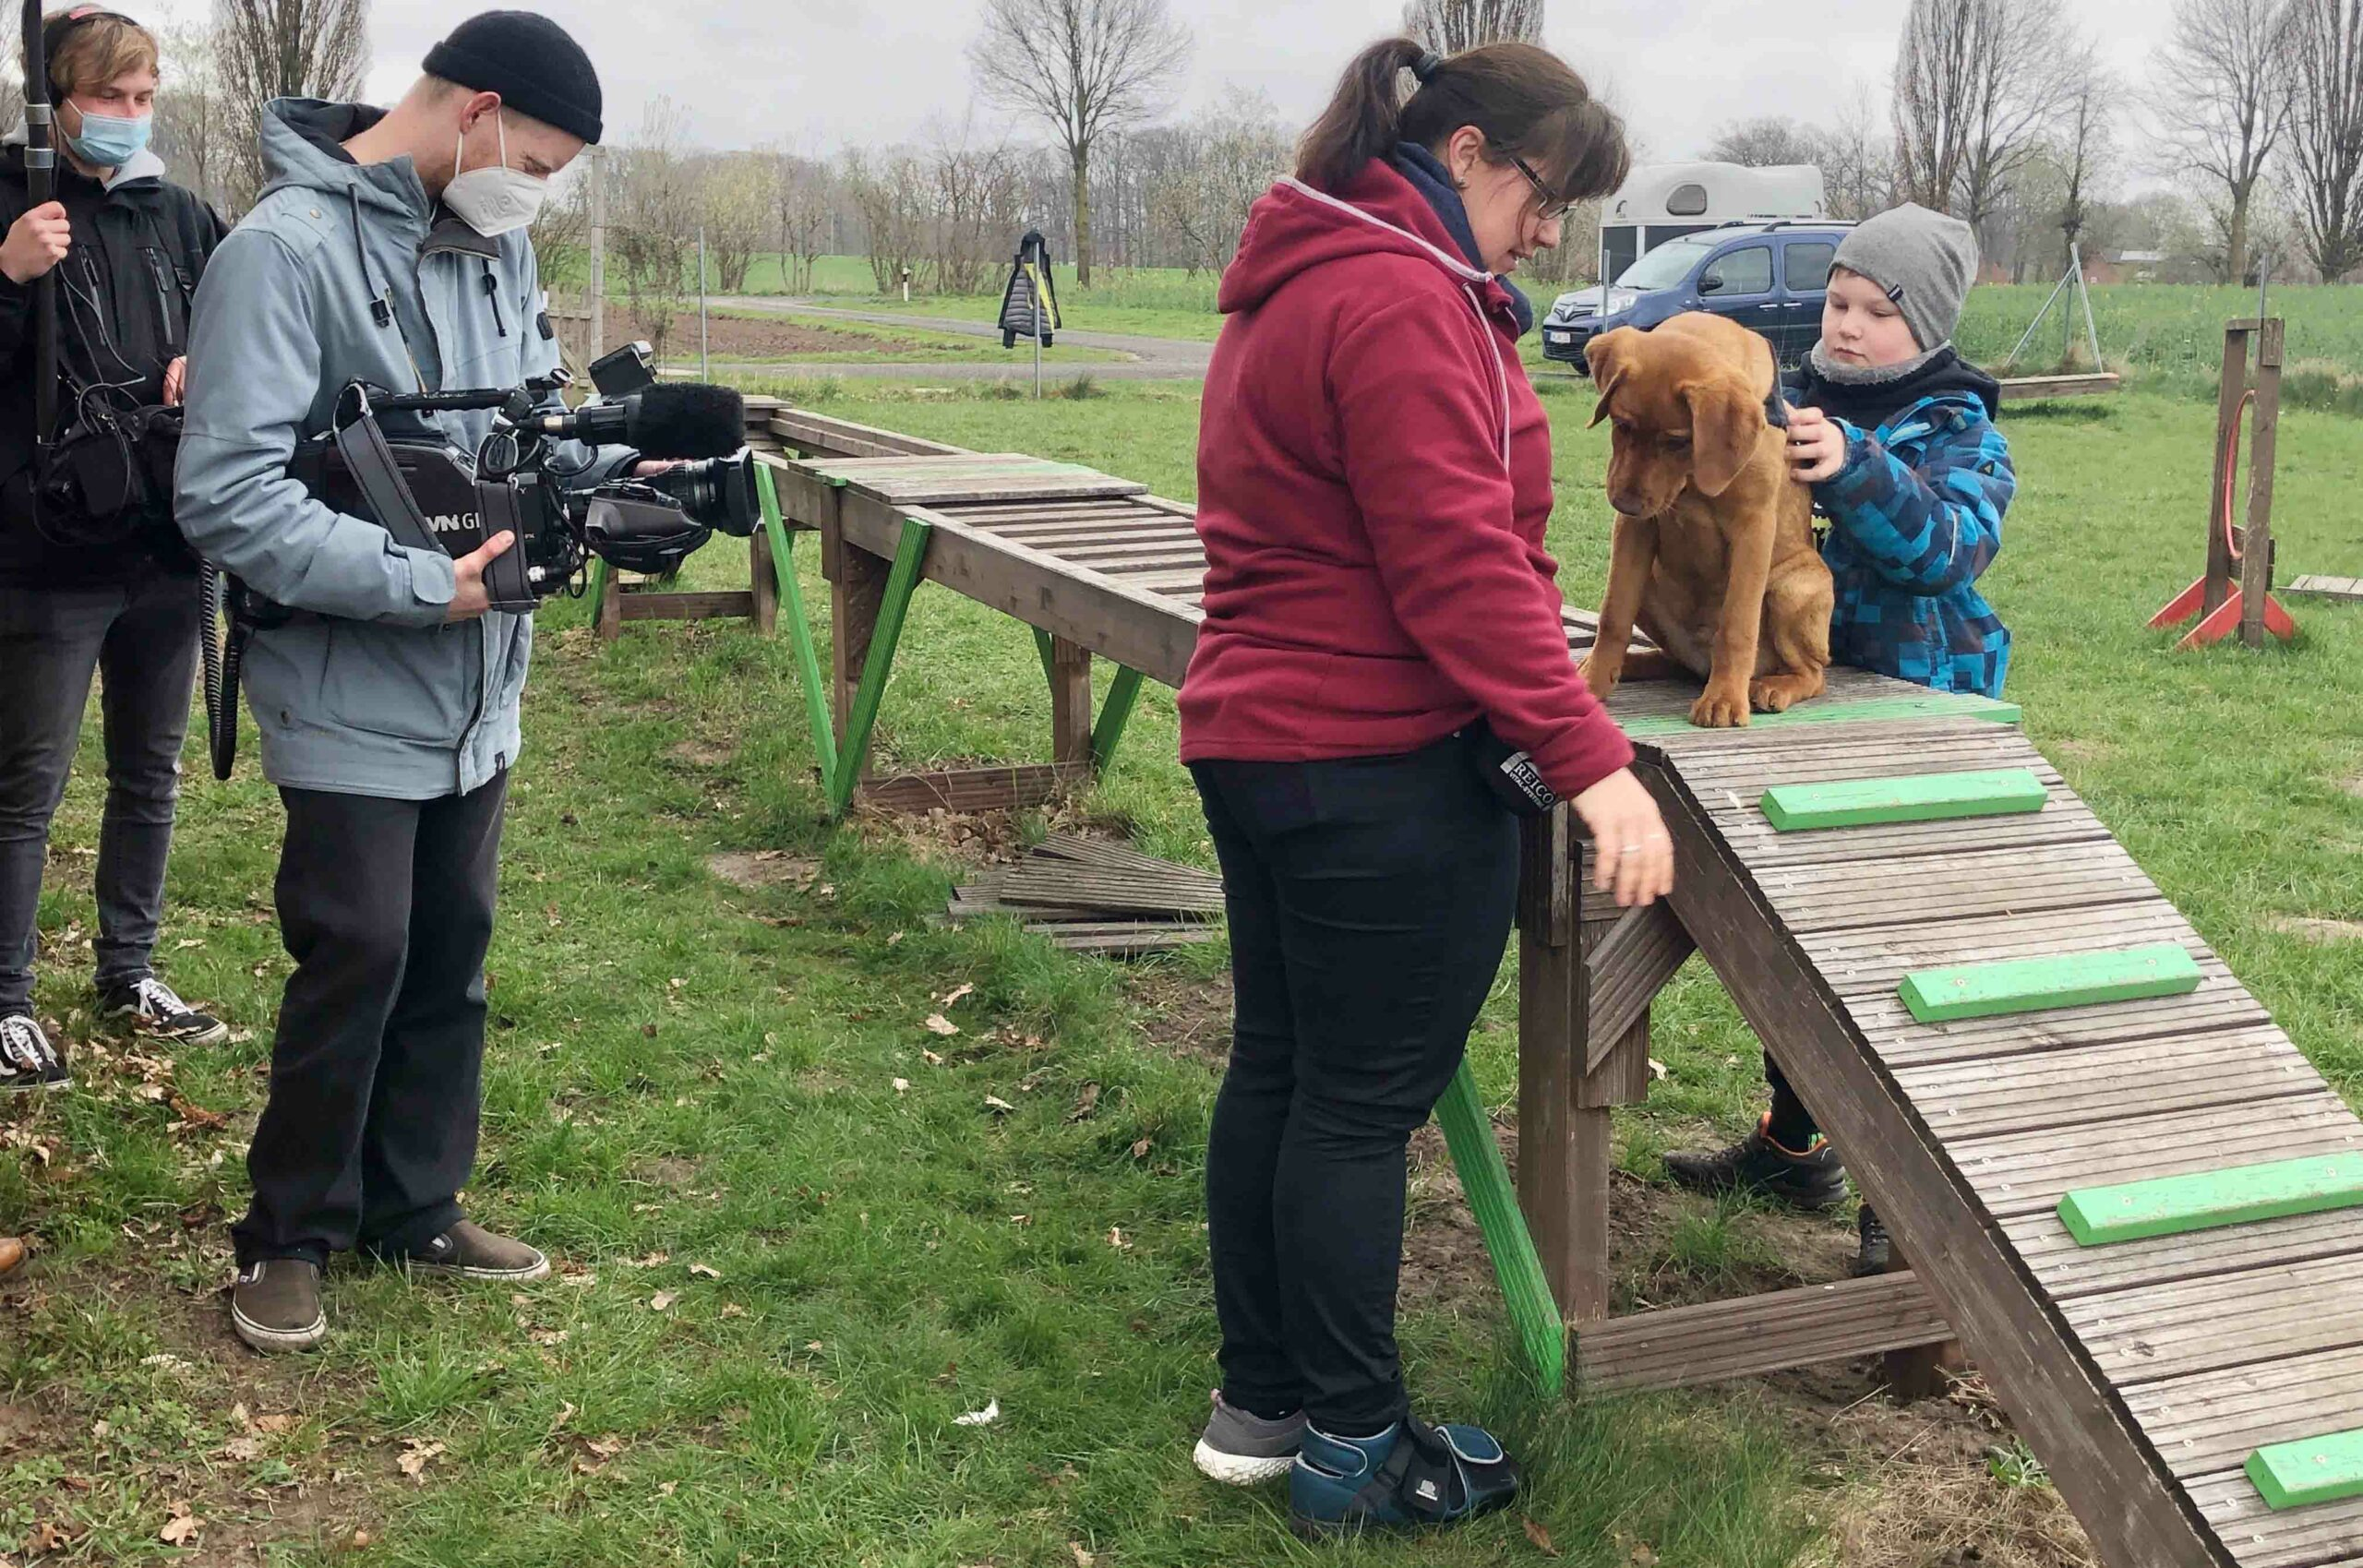 Aktion Kindertraum Blog RTL Dreh scaled - RTL zu Besuch bei Aktion Kindertraum